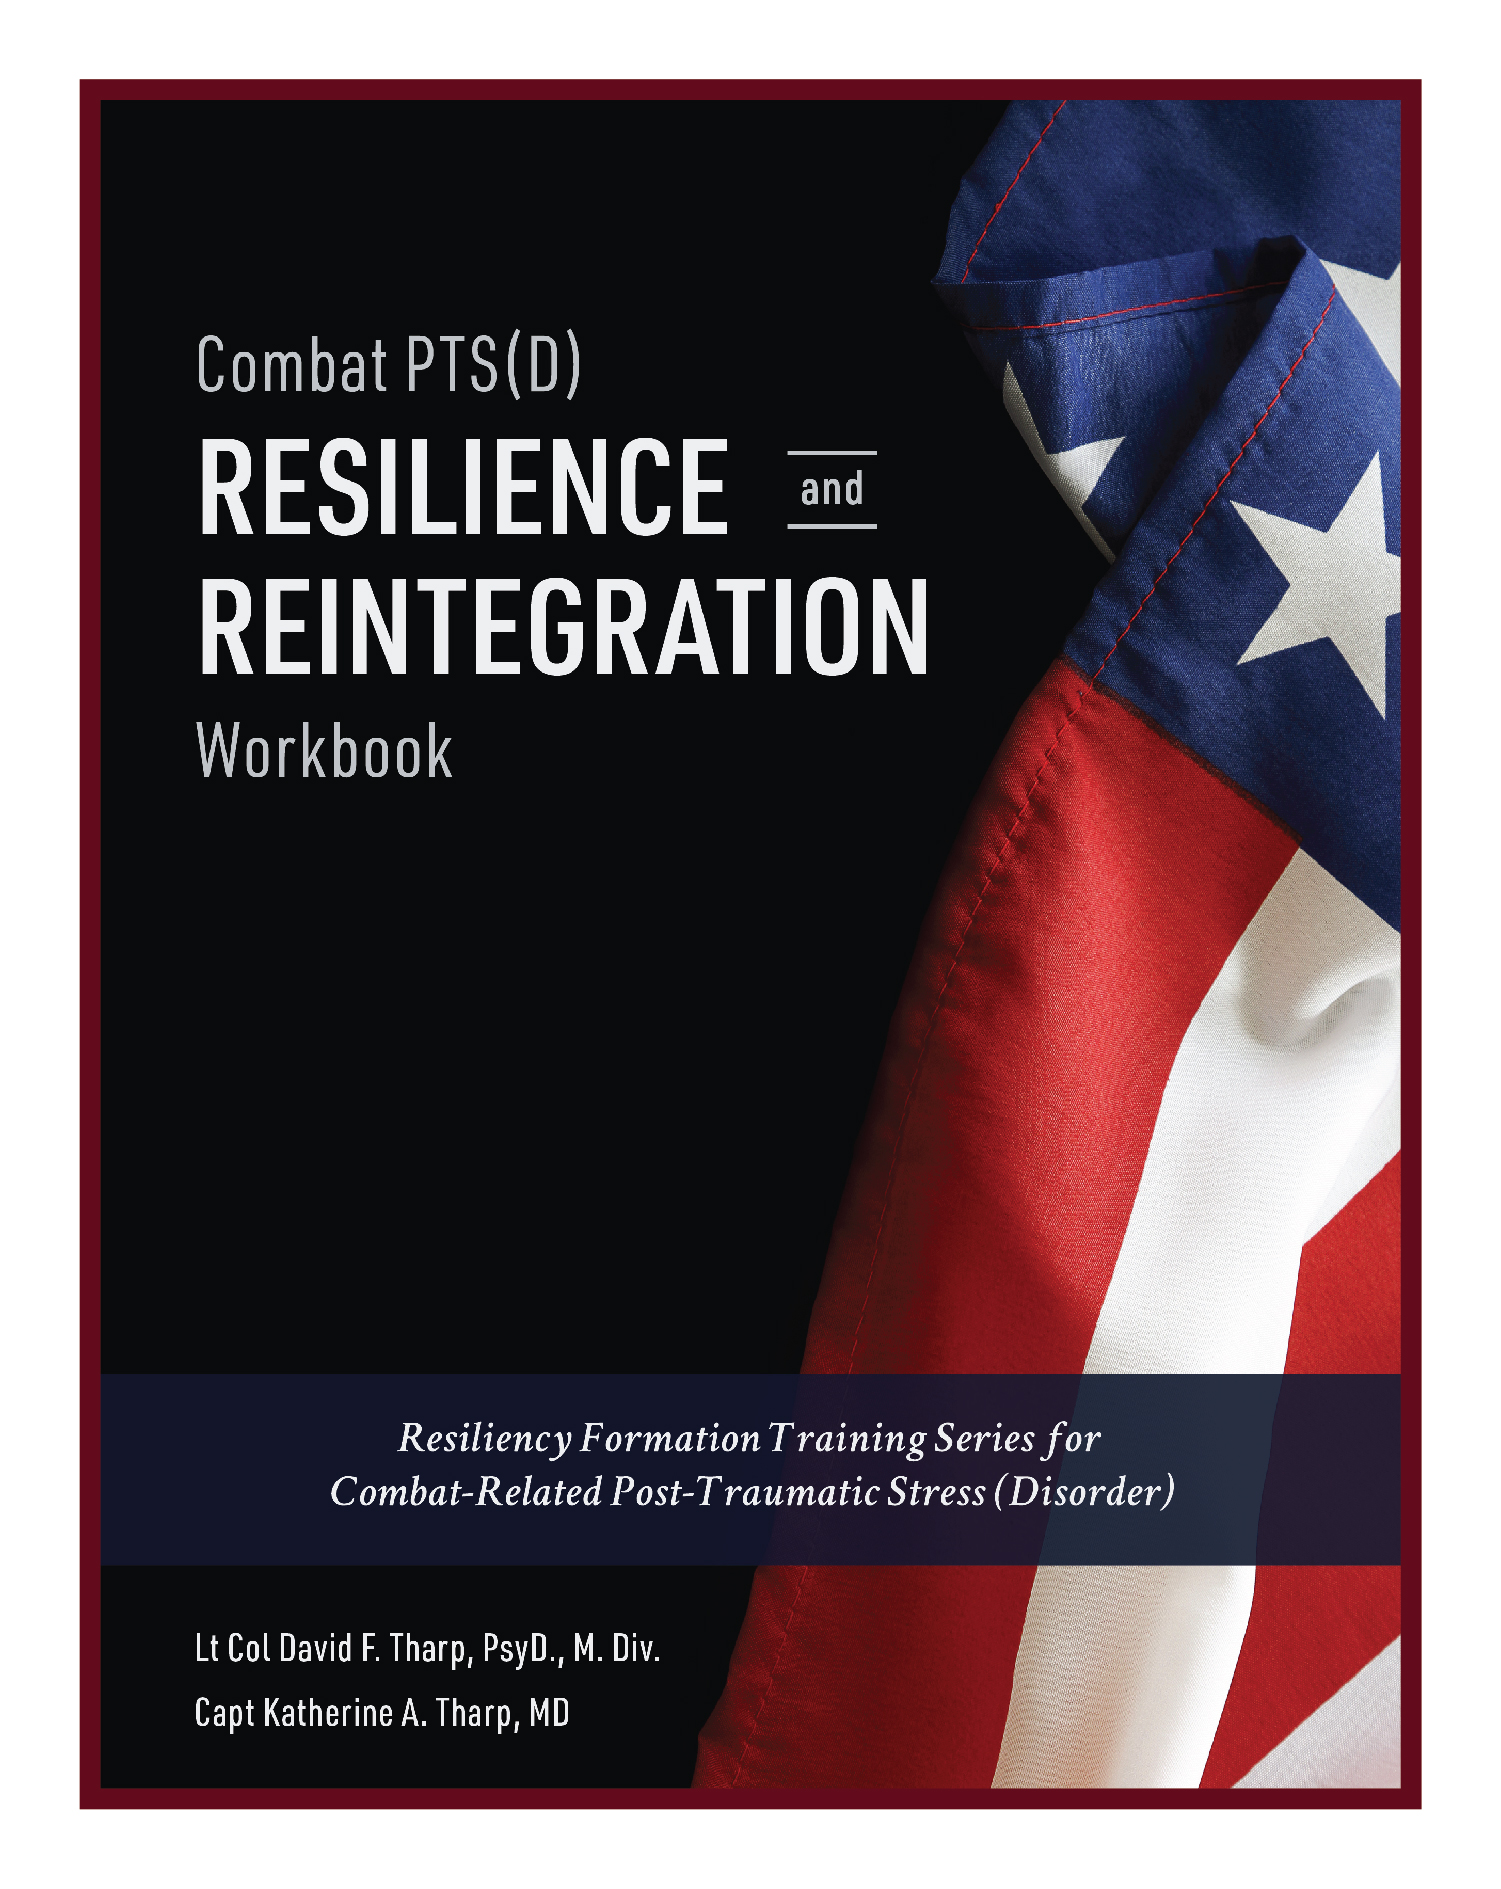 Combat PTS(D) Resilience & Reintegration Workbook - Resiliency Formation Training Series book 1 and workbook designed for individuals struggling with PTS(D)